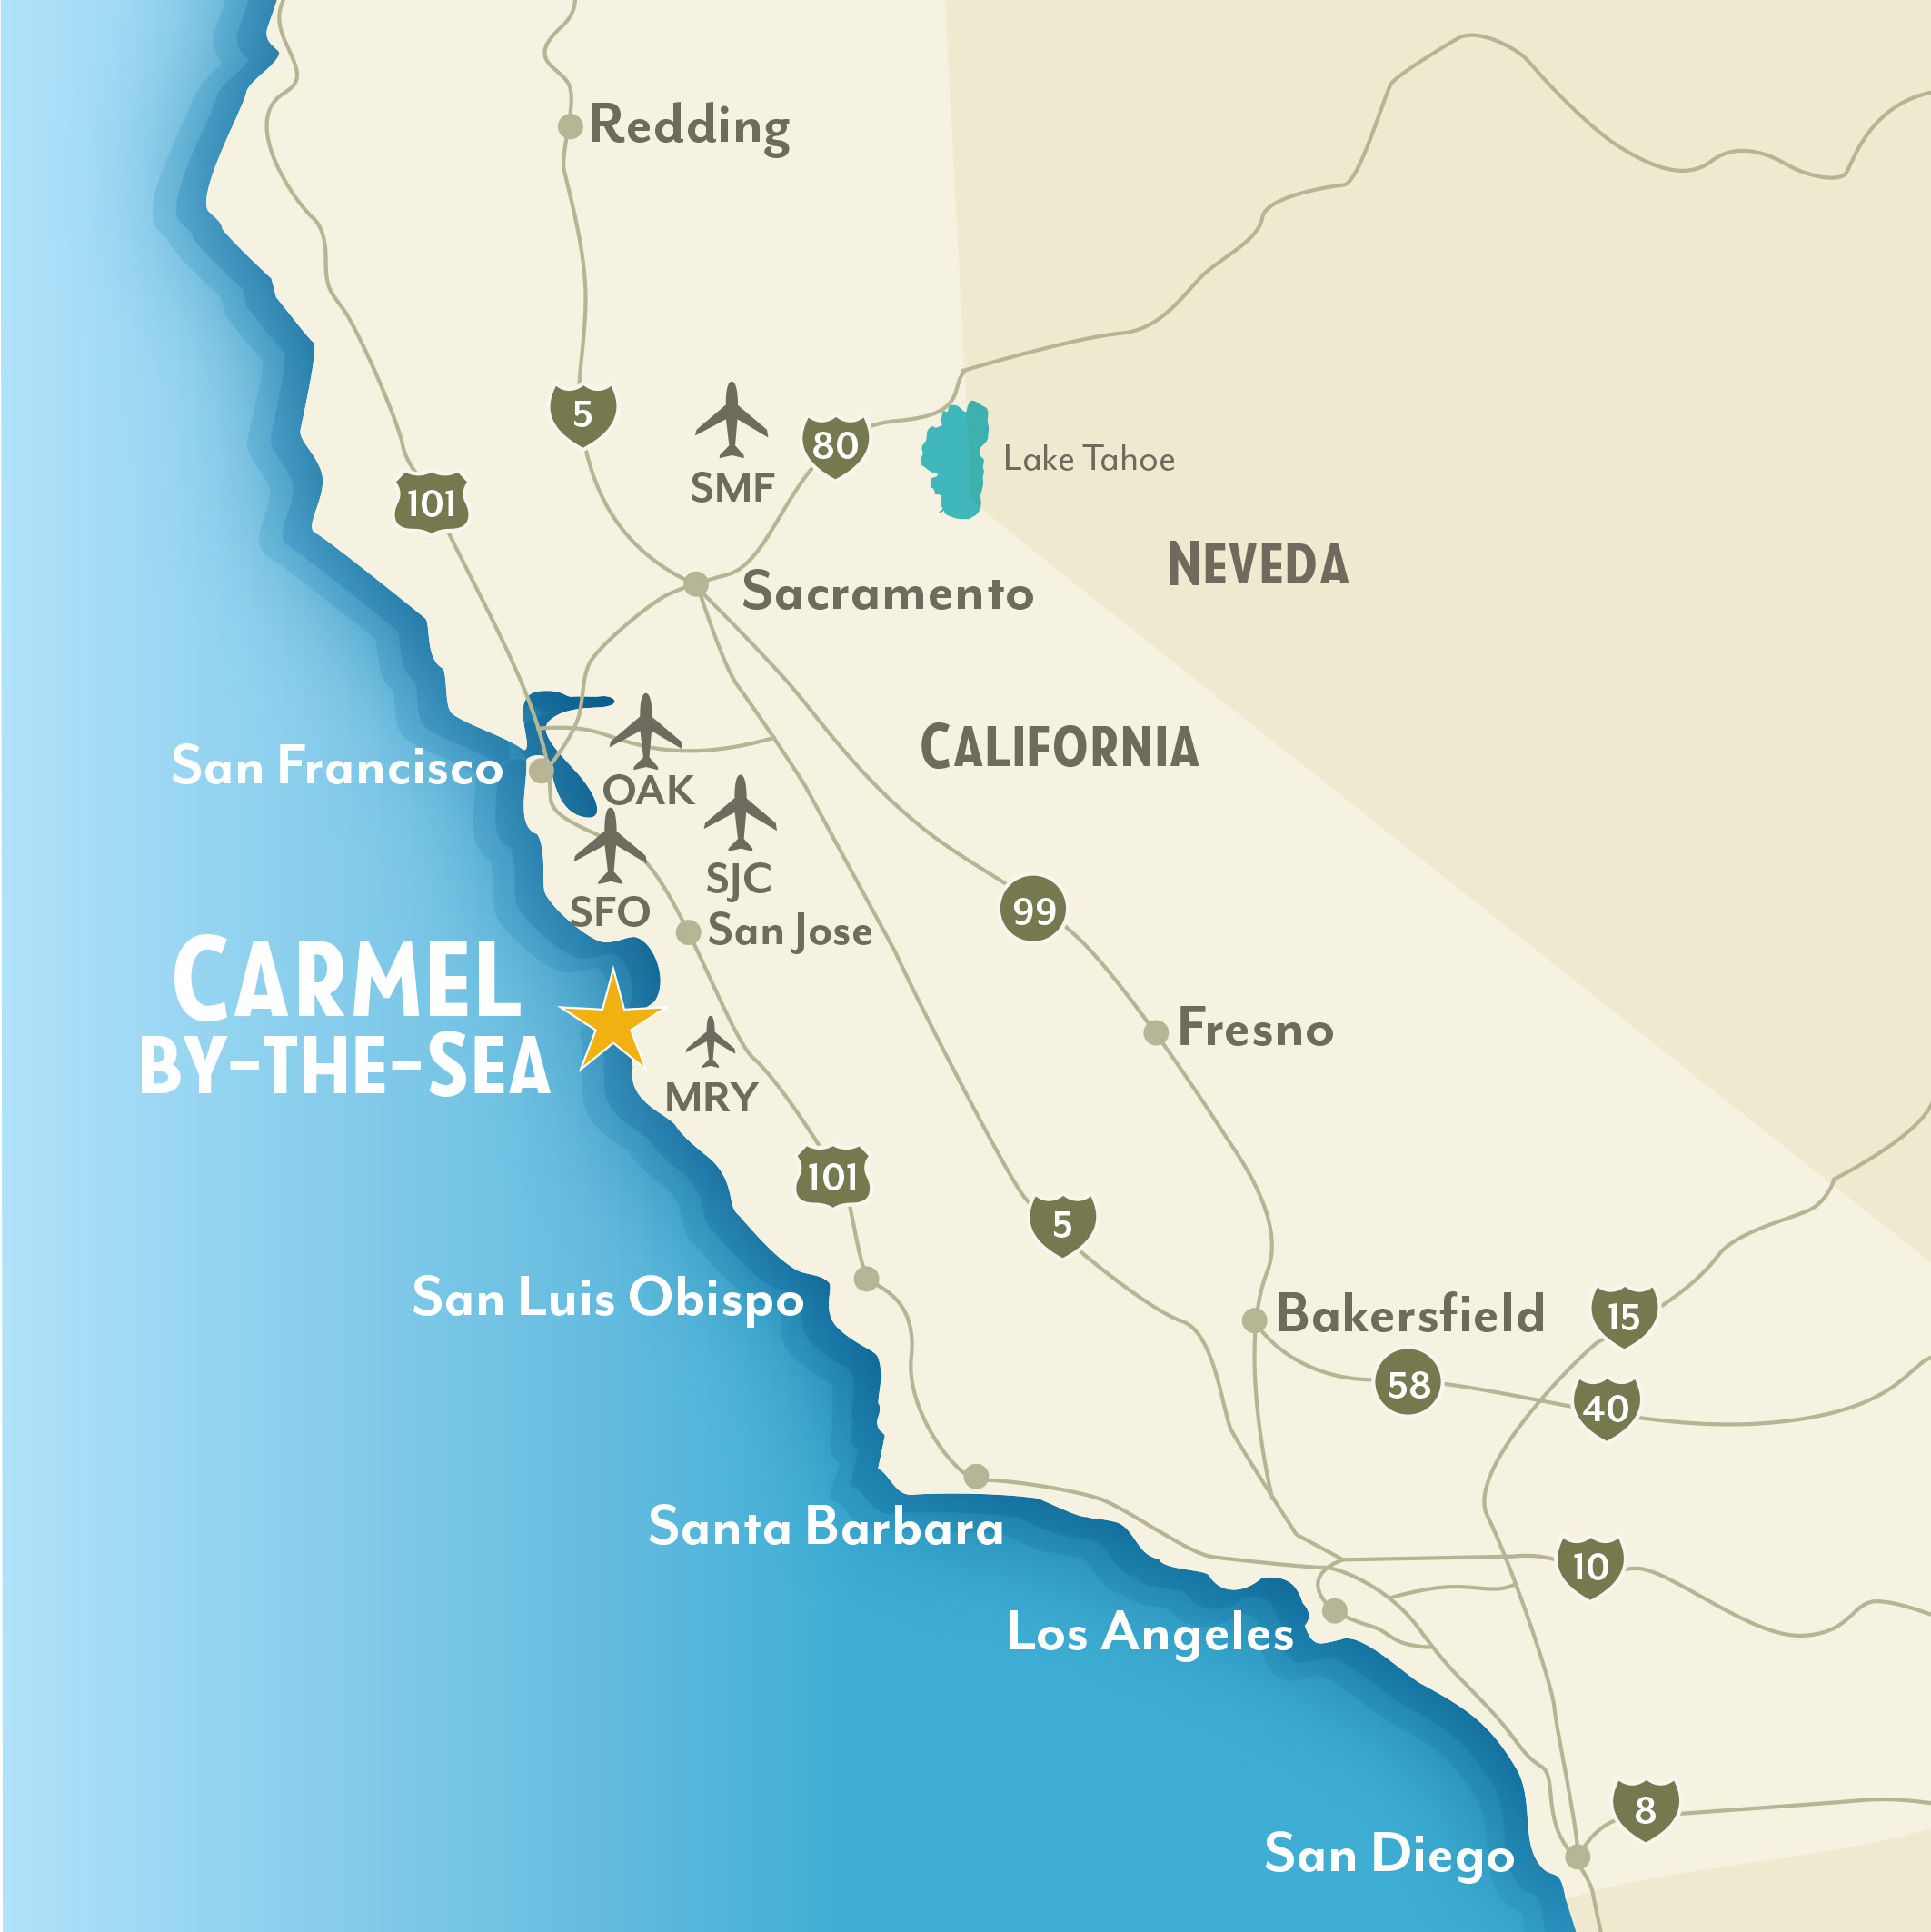 Visit Carmel Ca Map Picture Maps Charming California Google Maps - Charming California Google Maps